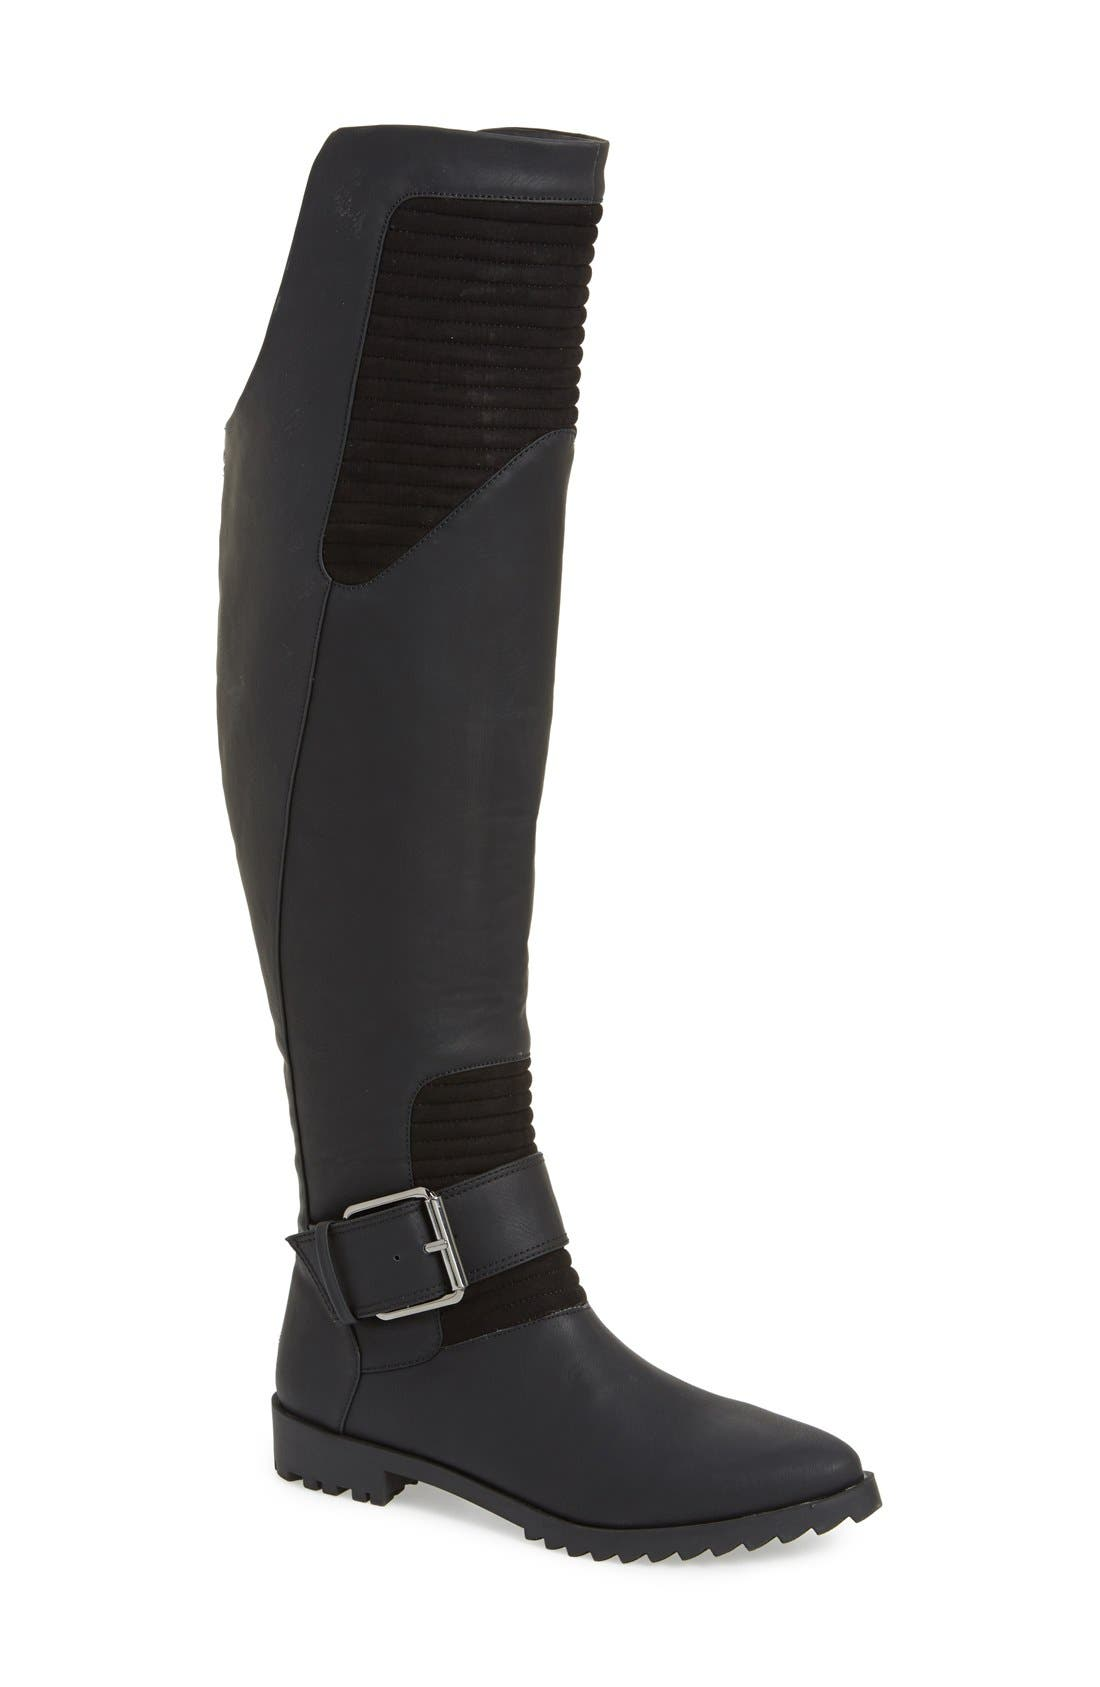 GX BY GWEN STEFANI 'Toledo' Over the Knee Boot, Main, color, 001